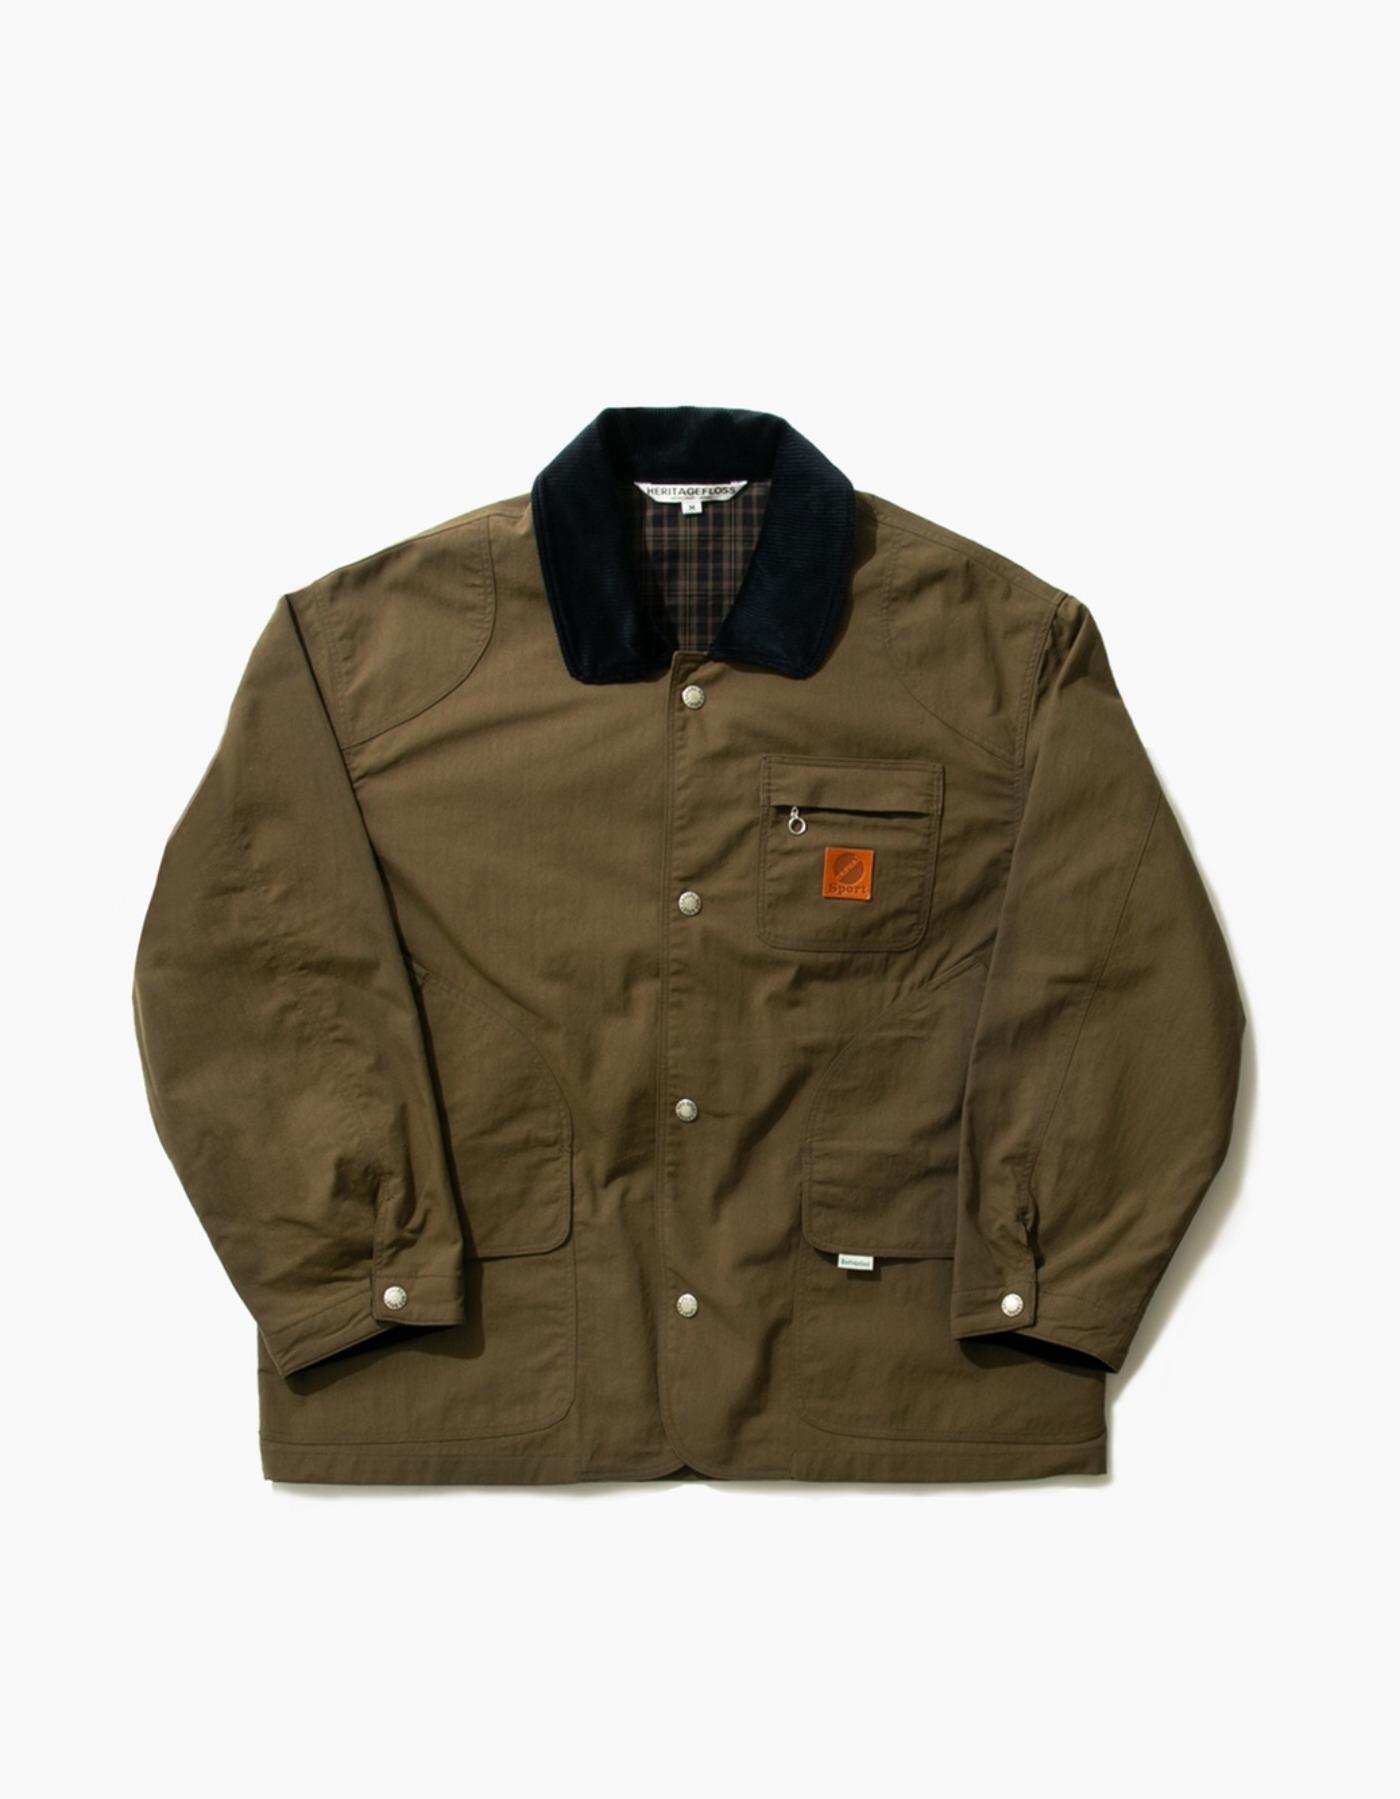 NYLON HUNTING JACKET / DESERT KHAKI